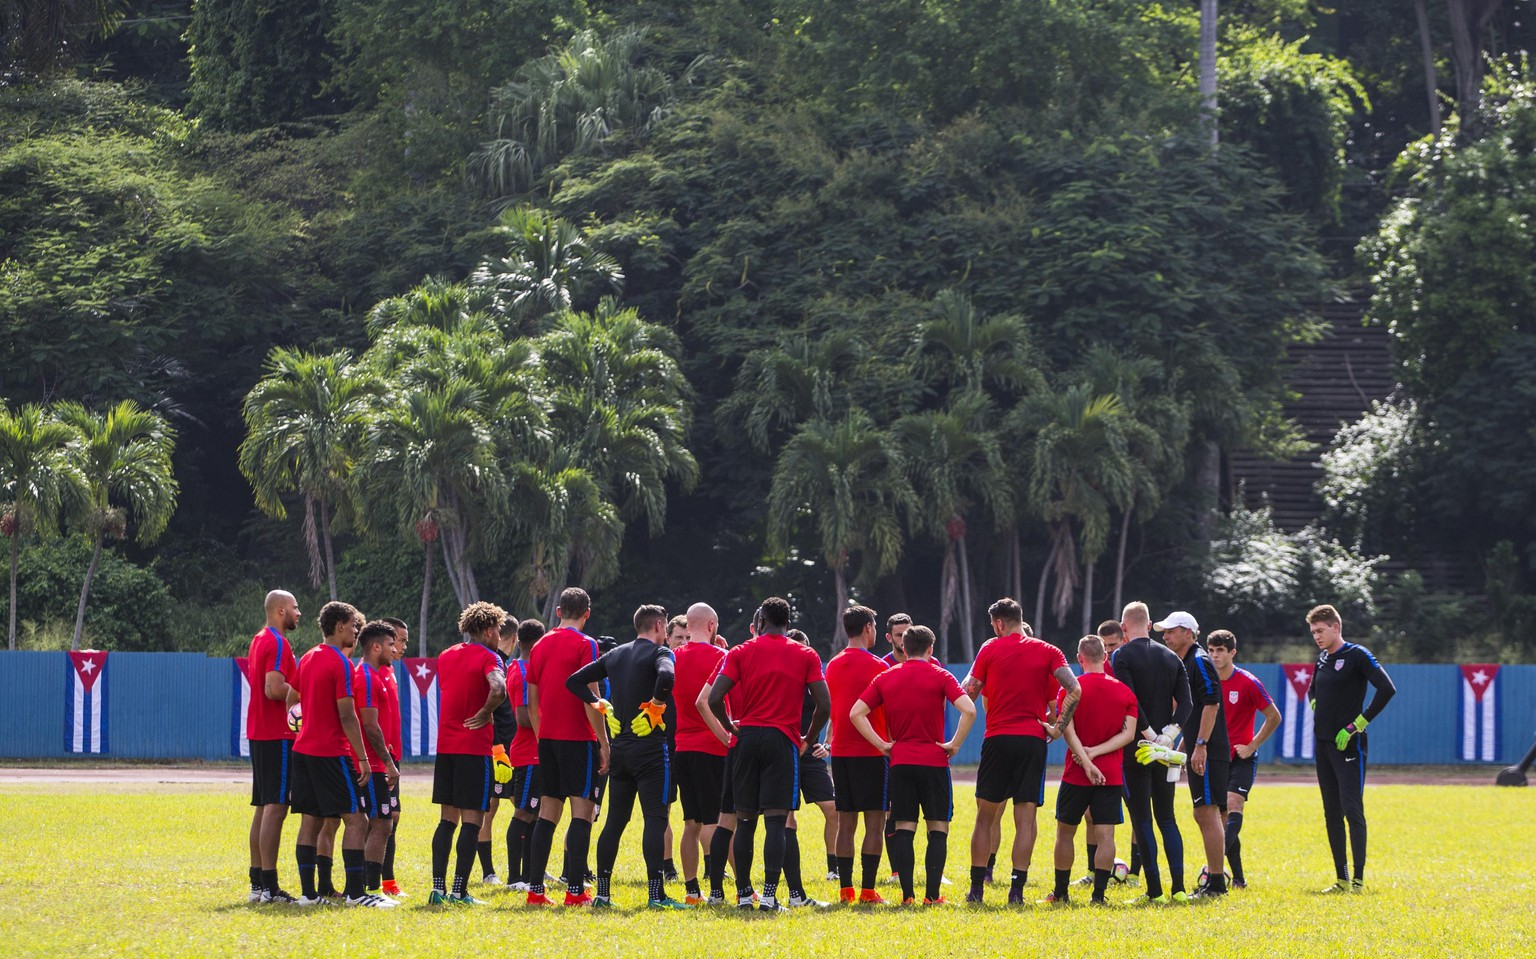 The United States national soccer team coach Jurgen Klinsmann, at right with white cap, gives instructions to his players during a training session at Pedro Marrero Stadium in Havana, Cuba, Thursday, Oct. 6, 2016. Cuba will play a friendly soccer match with the U.S. on Friday Oct. 7. (AP Photo/Desmond Boylan)